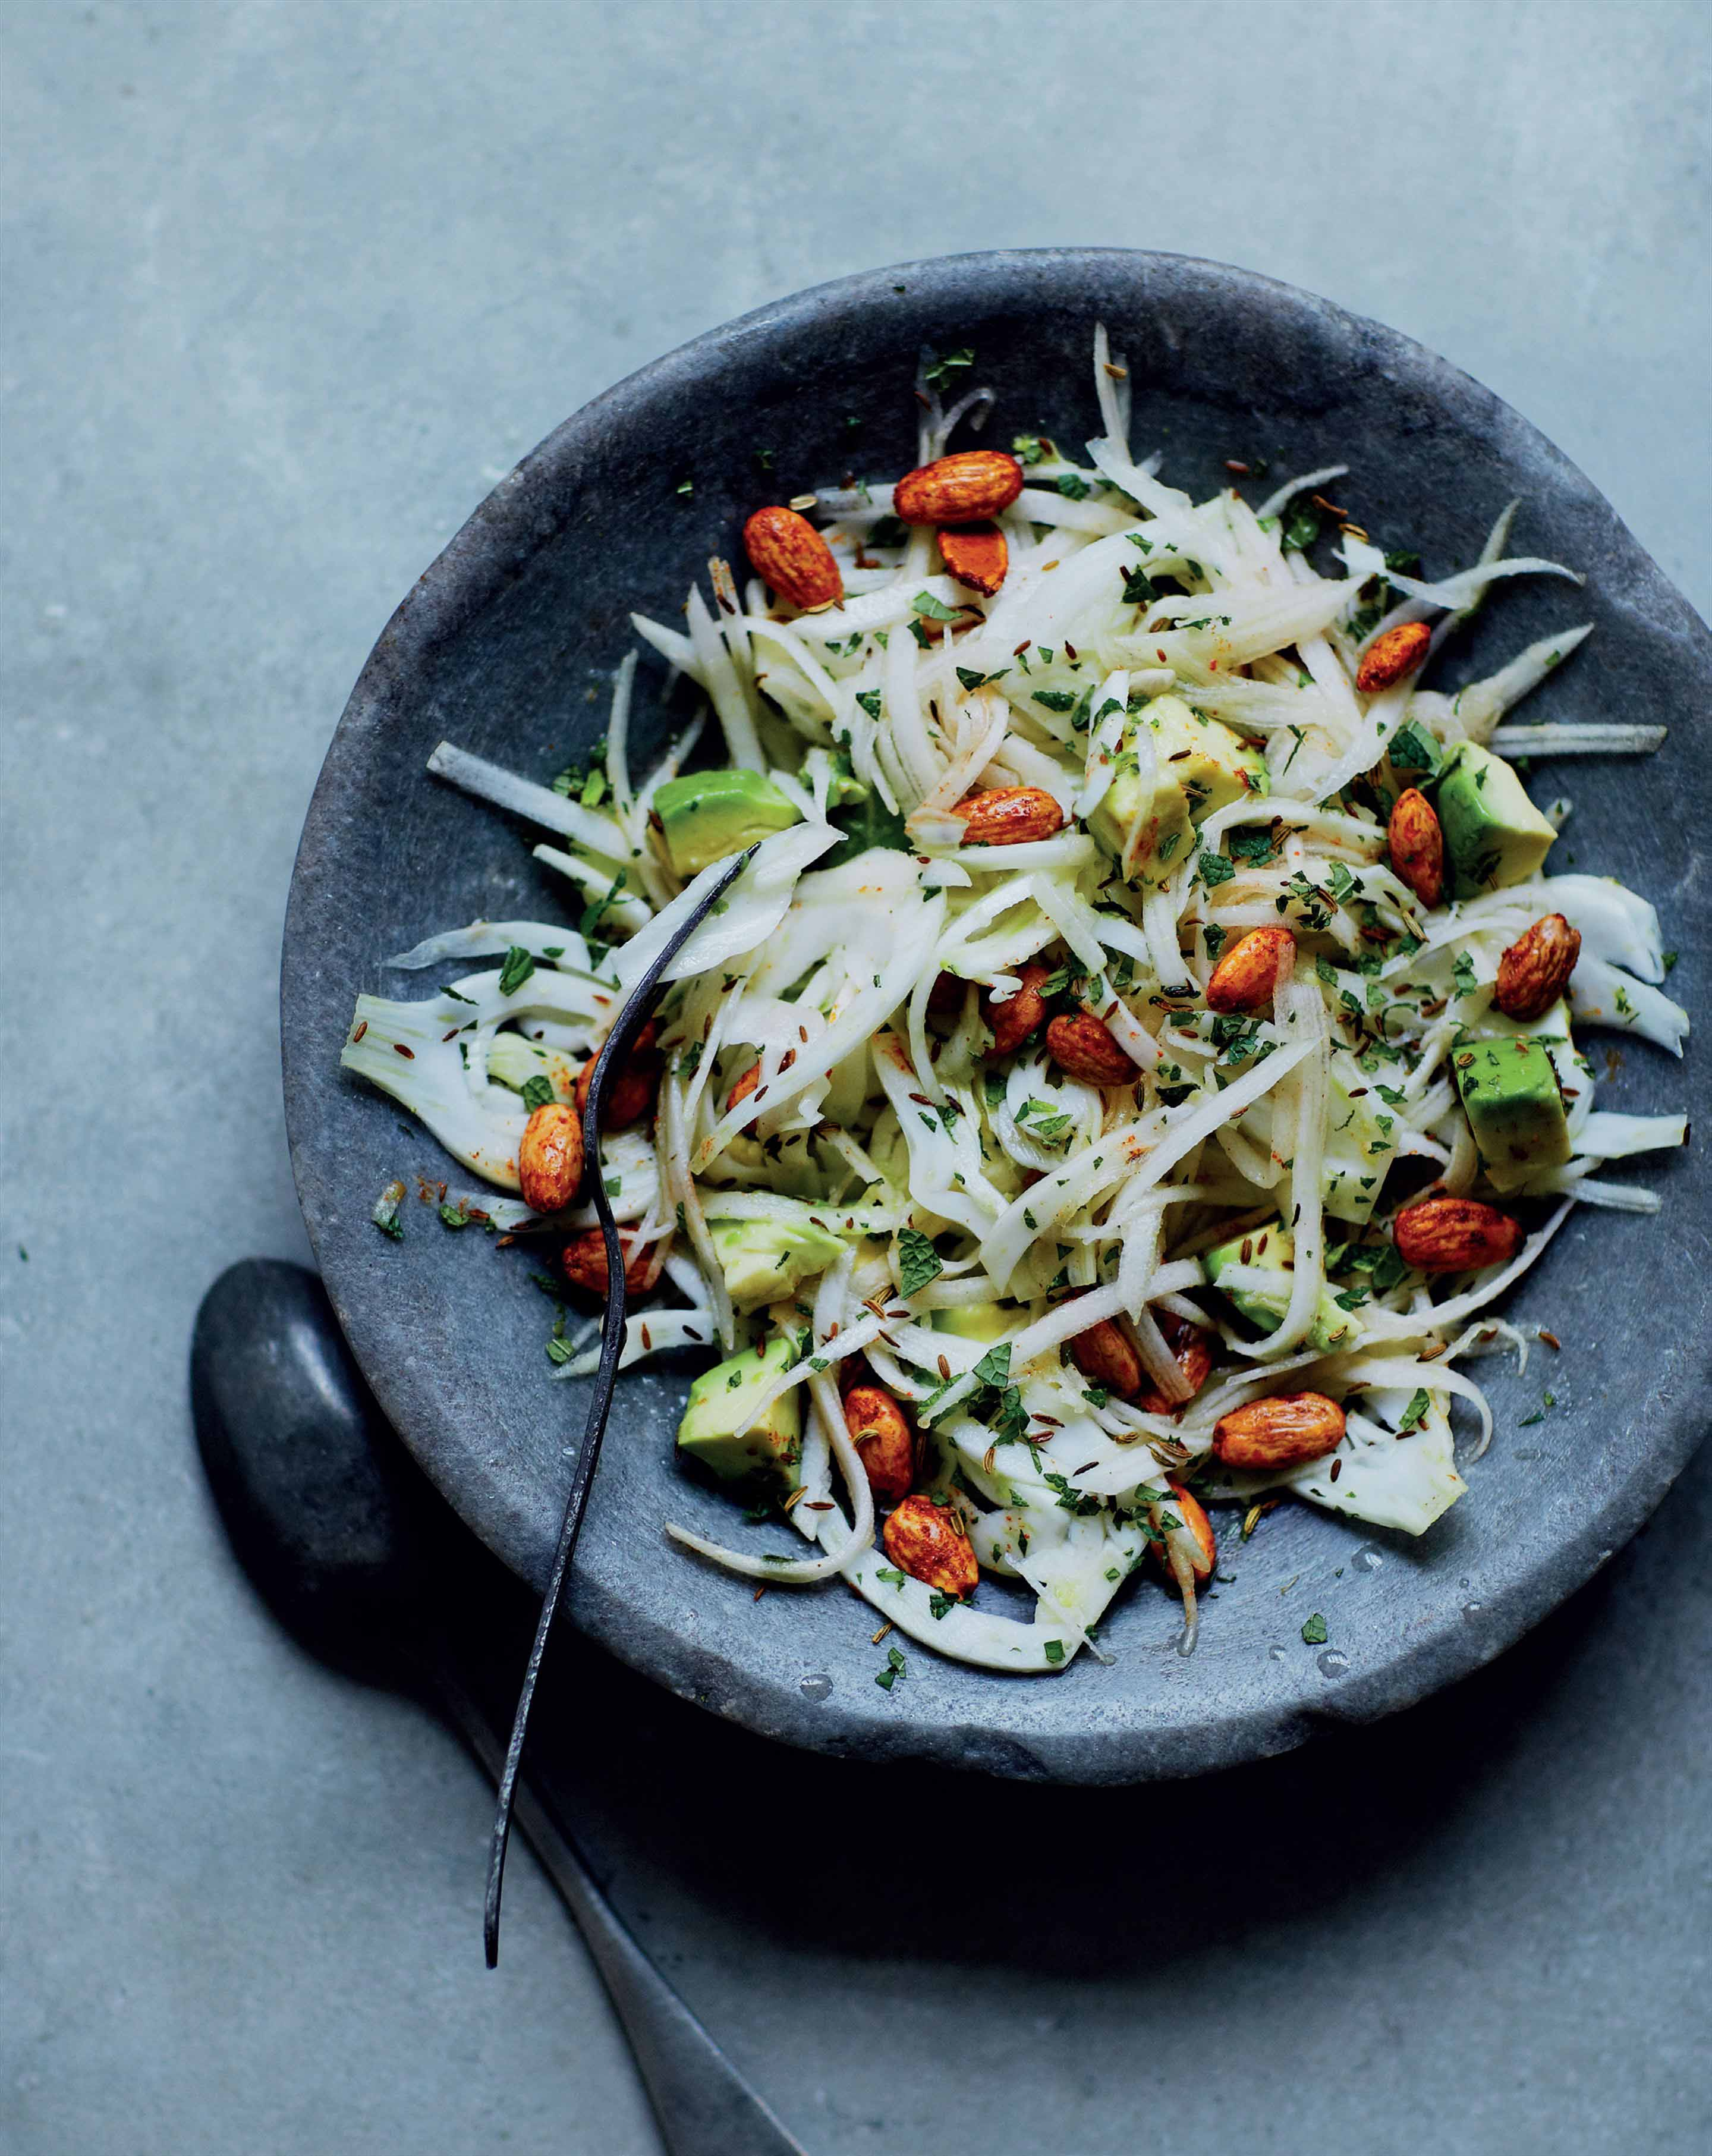 Fennel and pear salad with spicy almonds and avocado